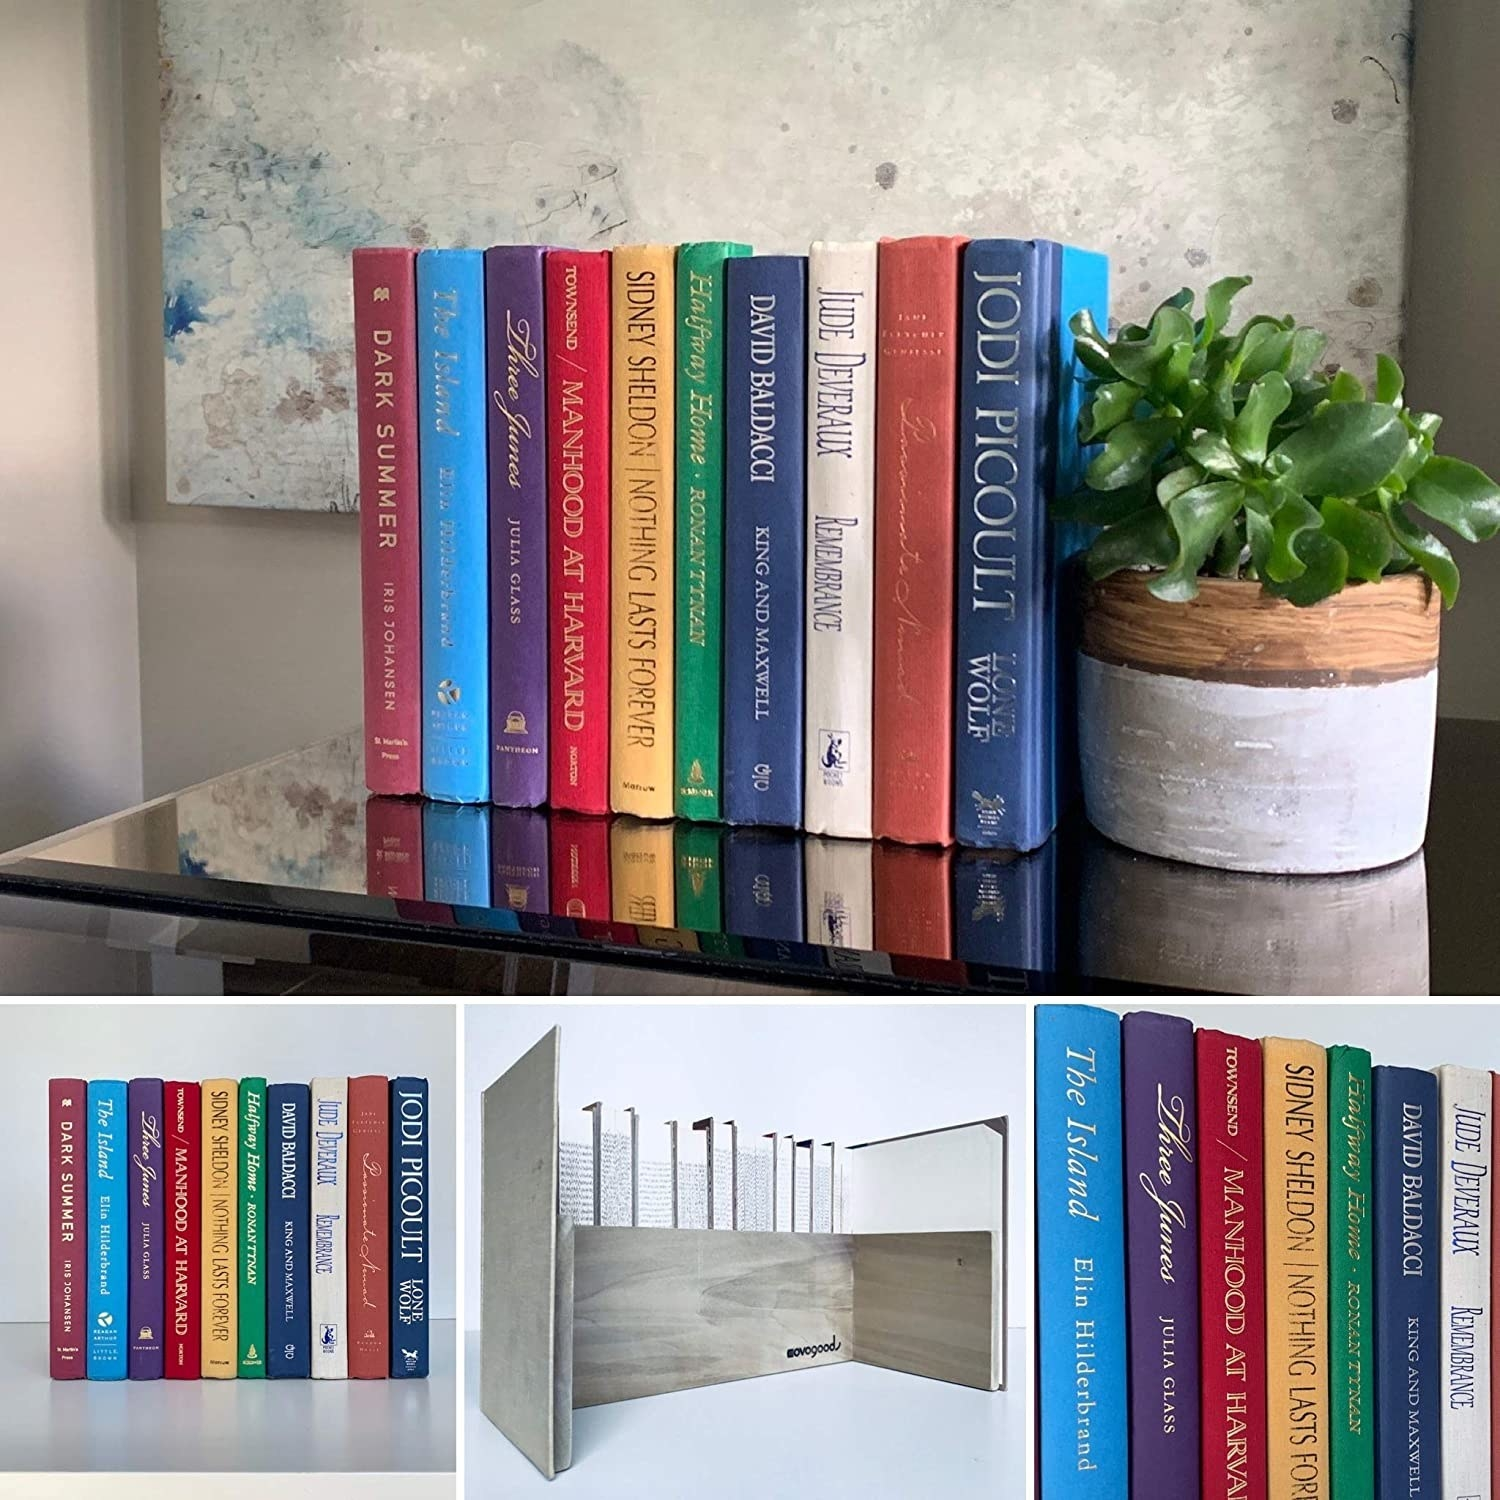 the shelf appearing as a stack of used books on a counter, with an image showing the storage space behind the books